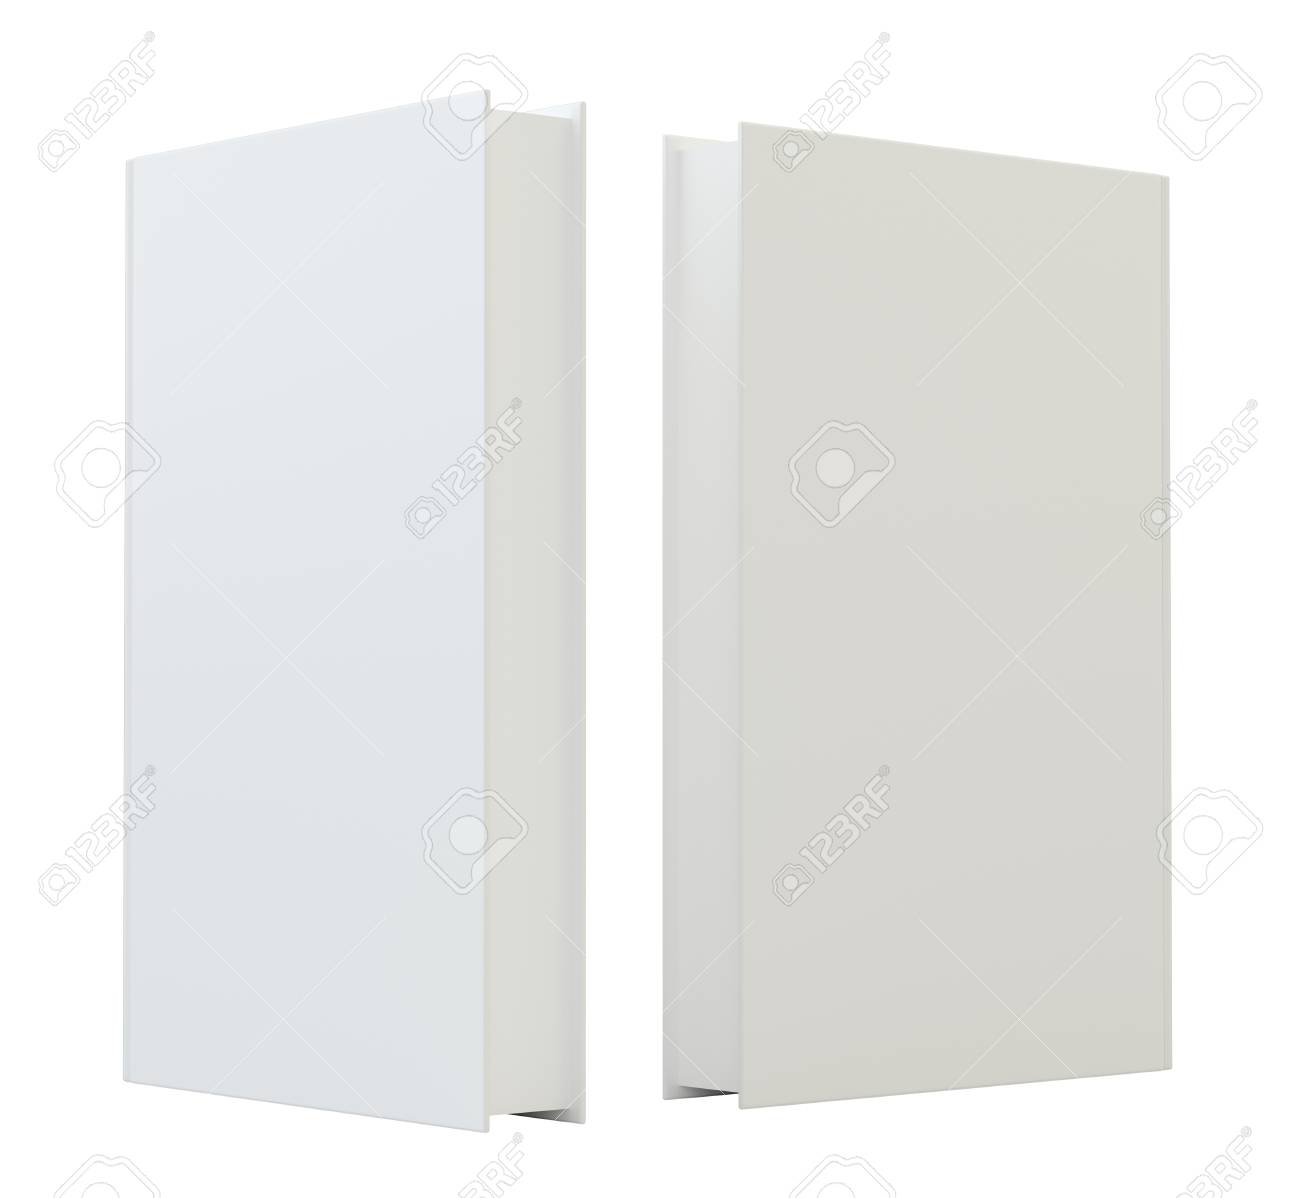 Blank Mockcup Book Cover Template Standing 3d Rendering Isolated